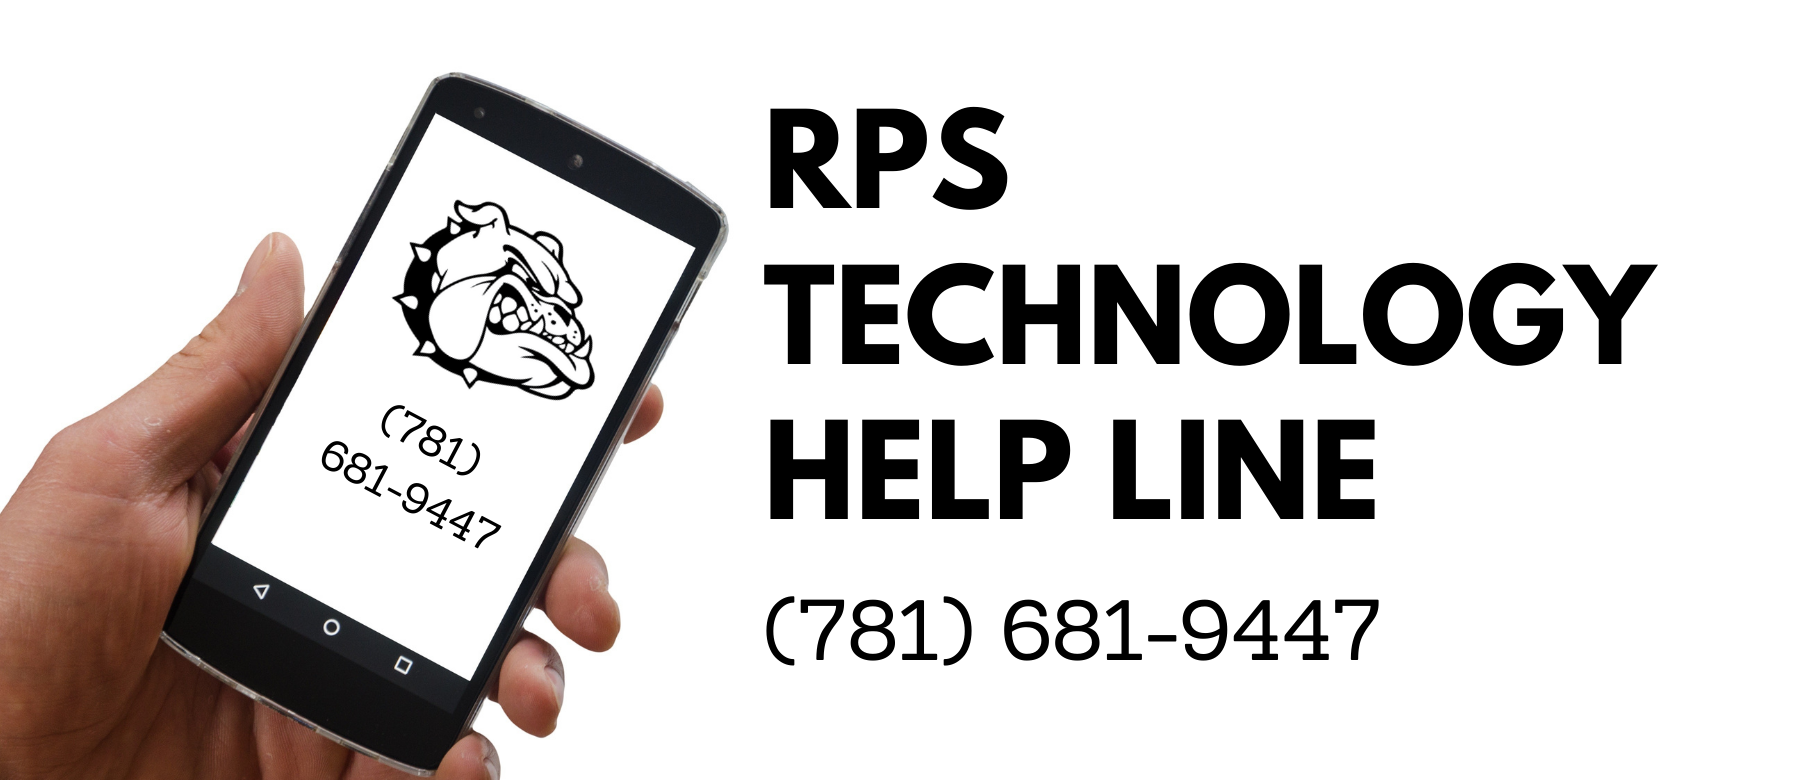 RPS Technology Help Line